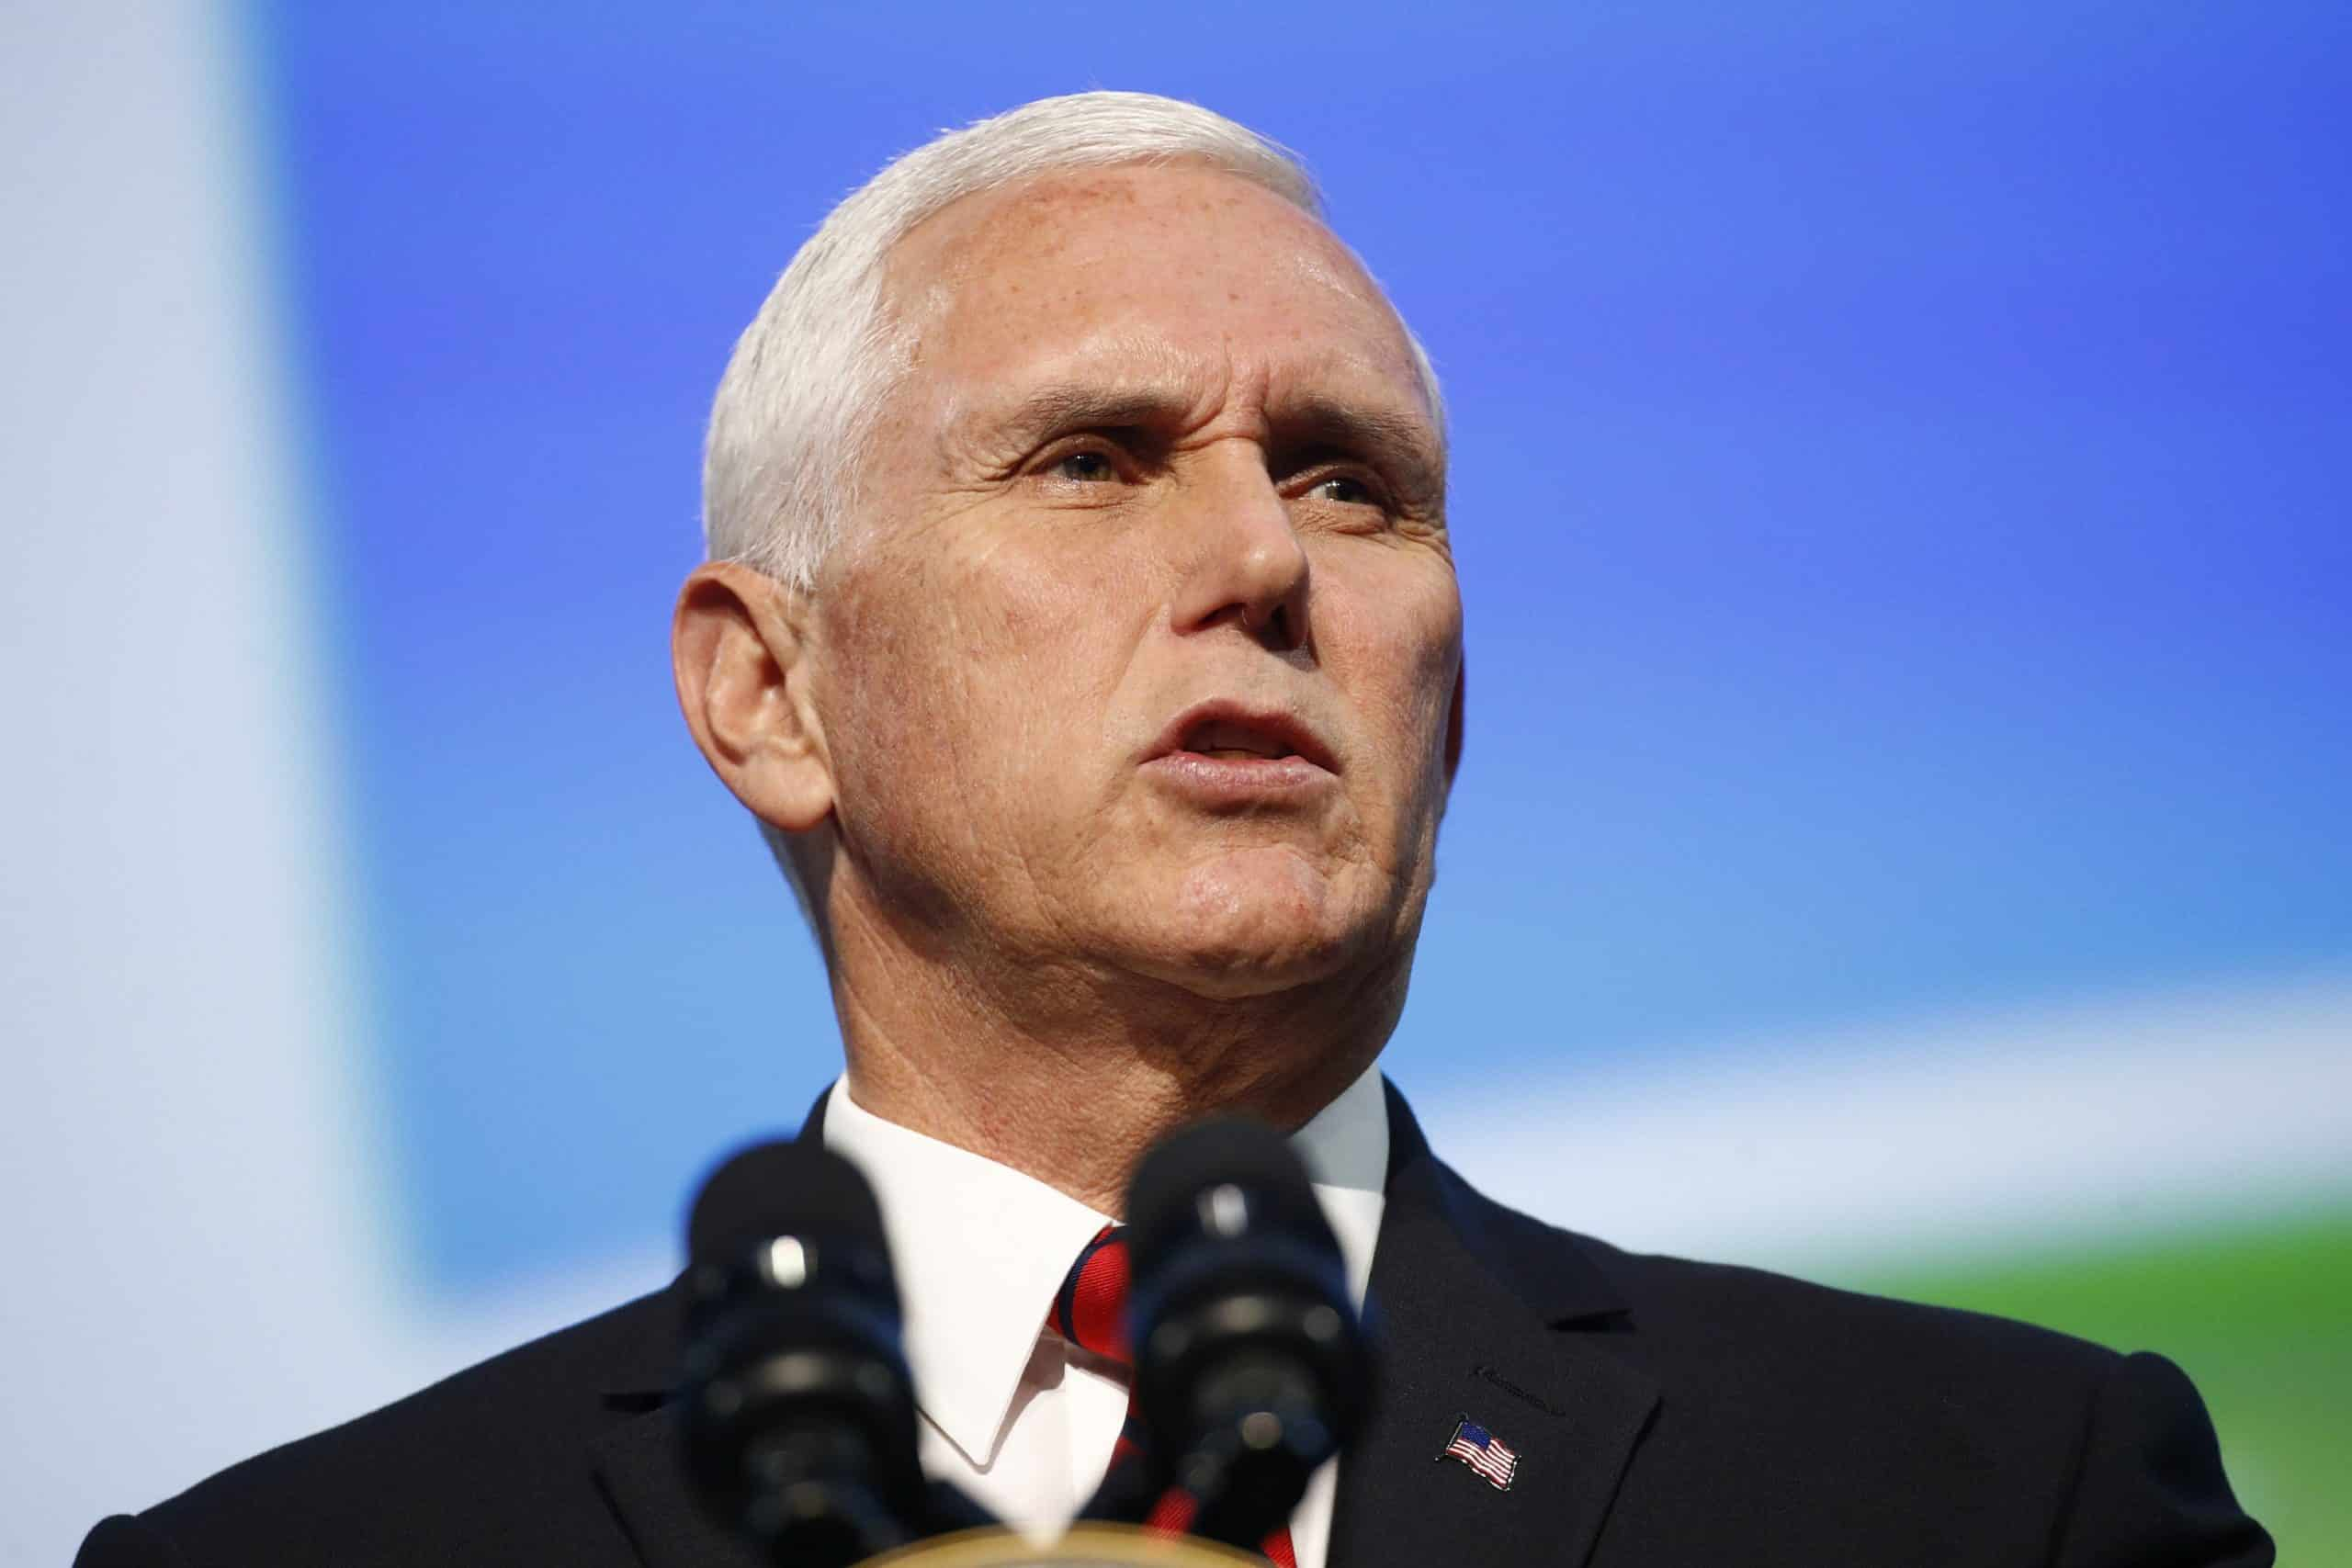 AP FACT CHECK: Pence misleadingly links Iran general to 9/11